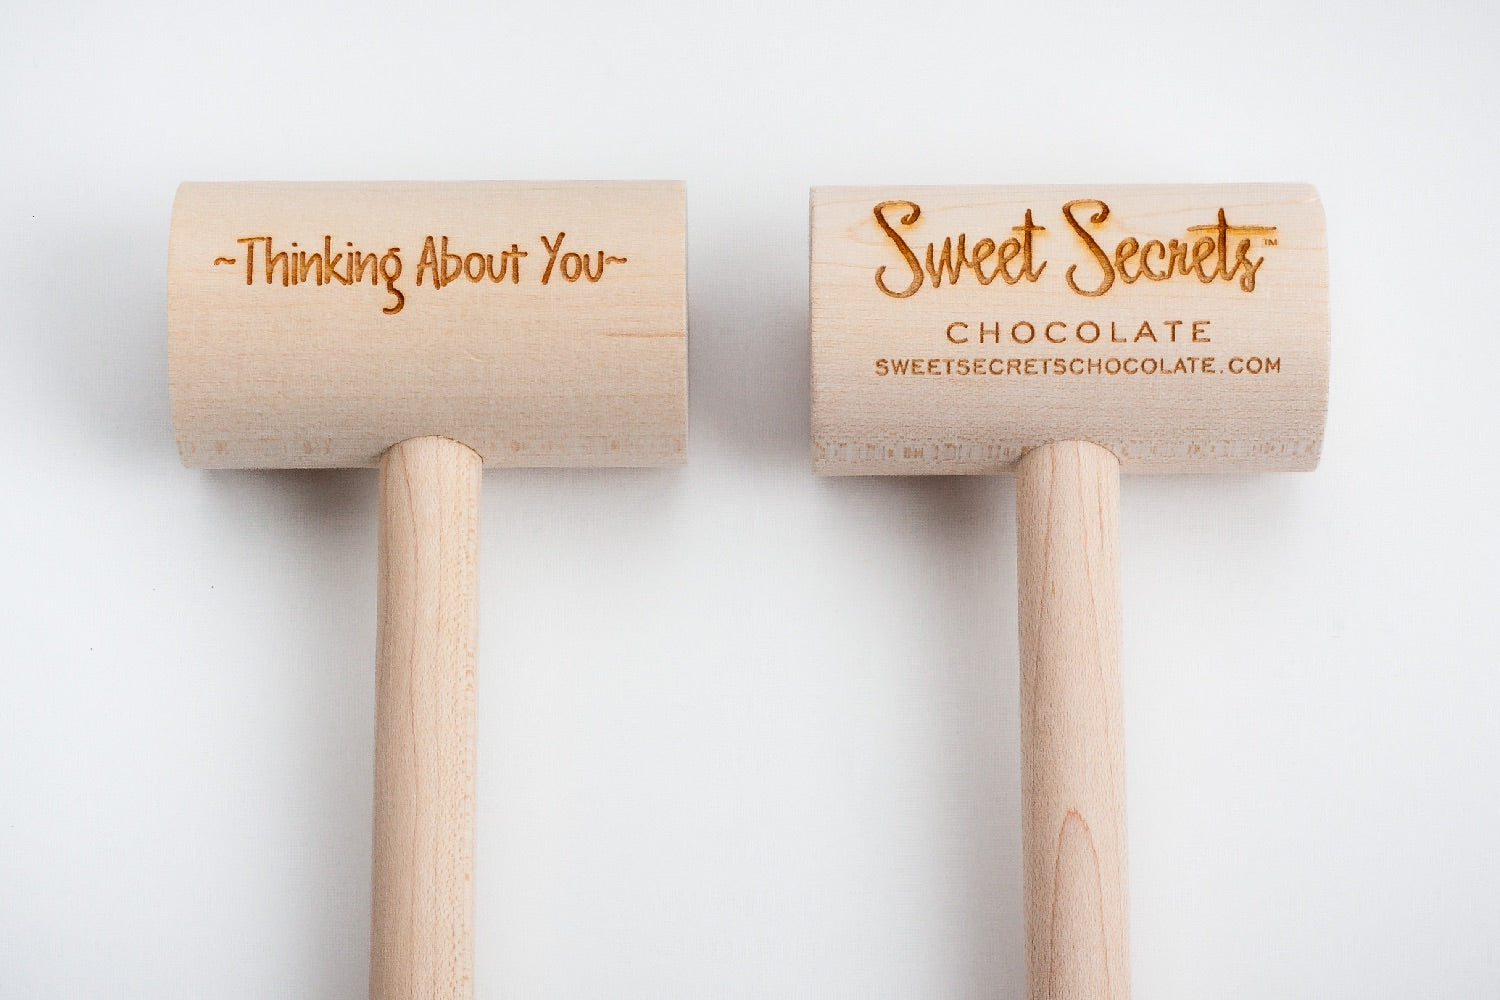 Thinking About You Smash Mallet-Sweet Secrets Chocolate